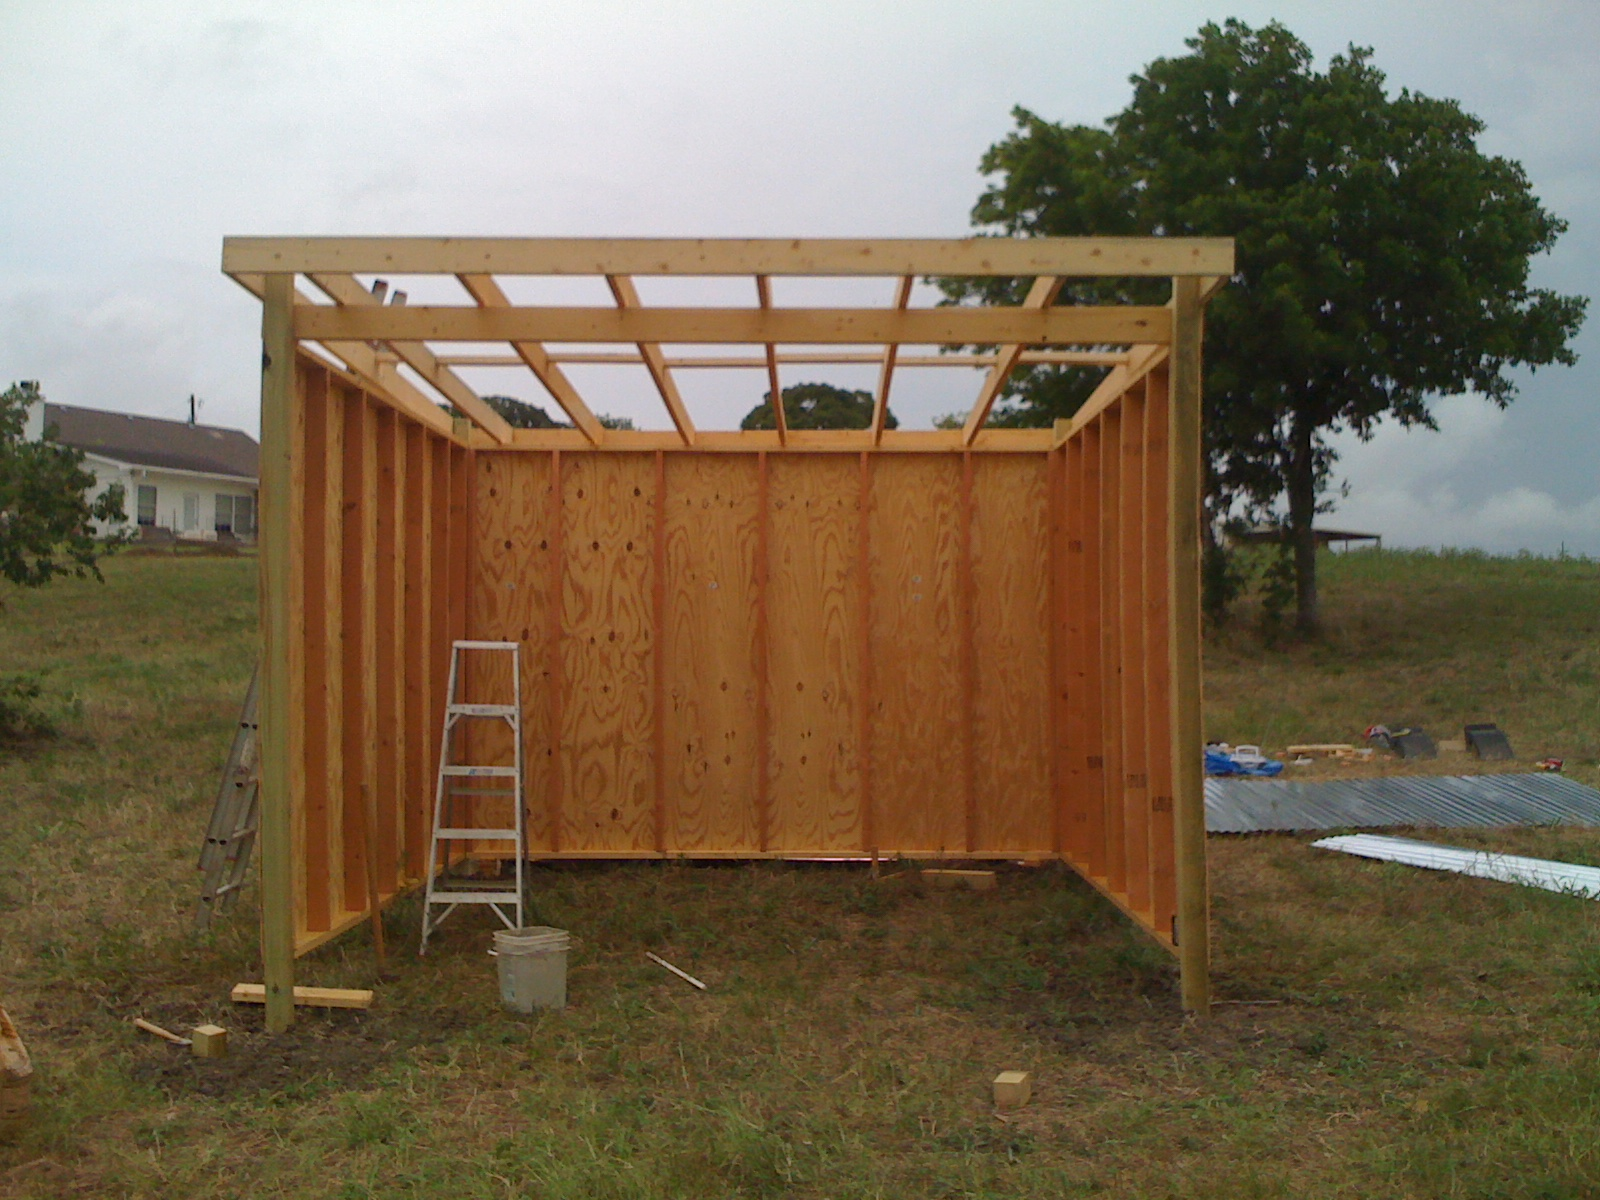 Know thyself doctor handyman and the horse shelter for Three sided shed plans